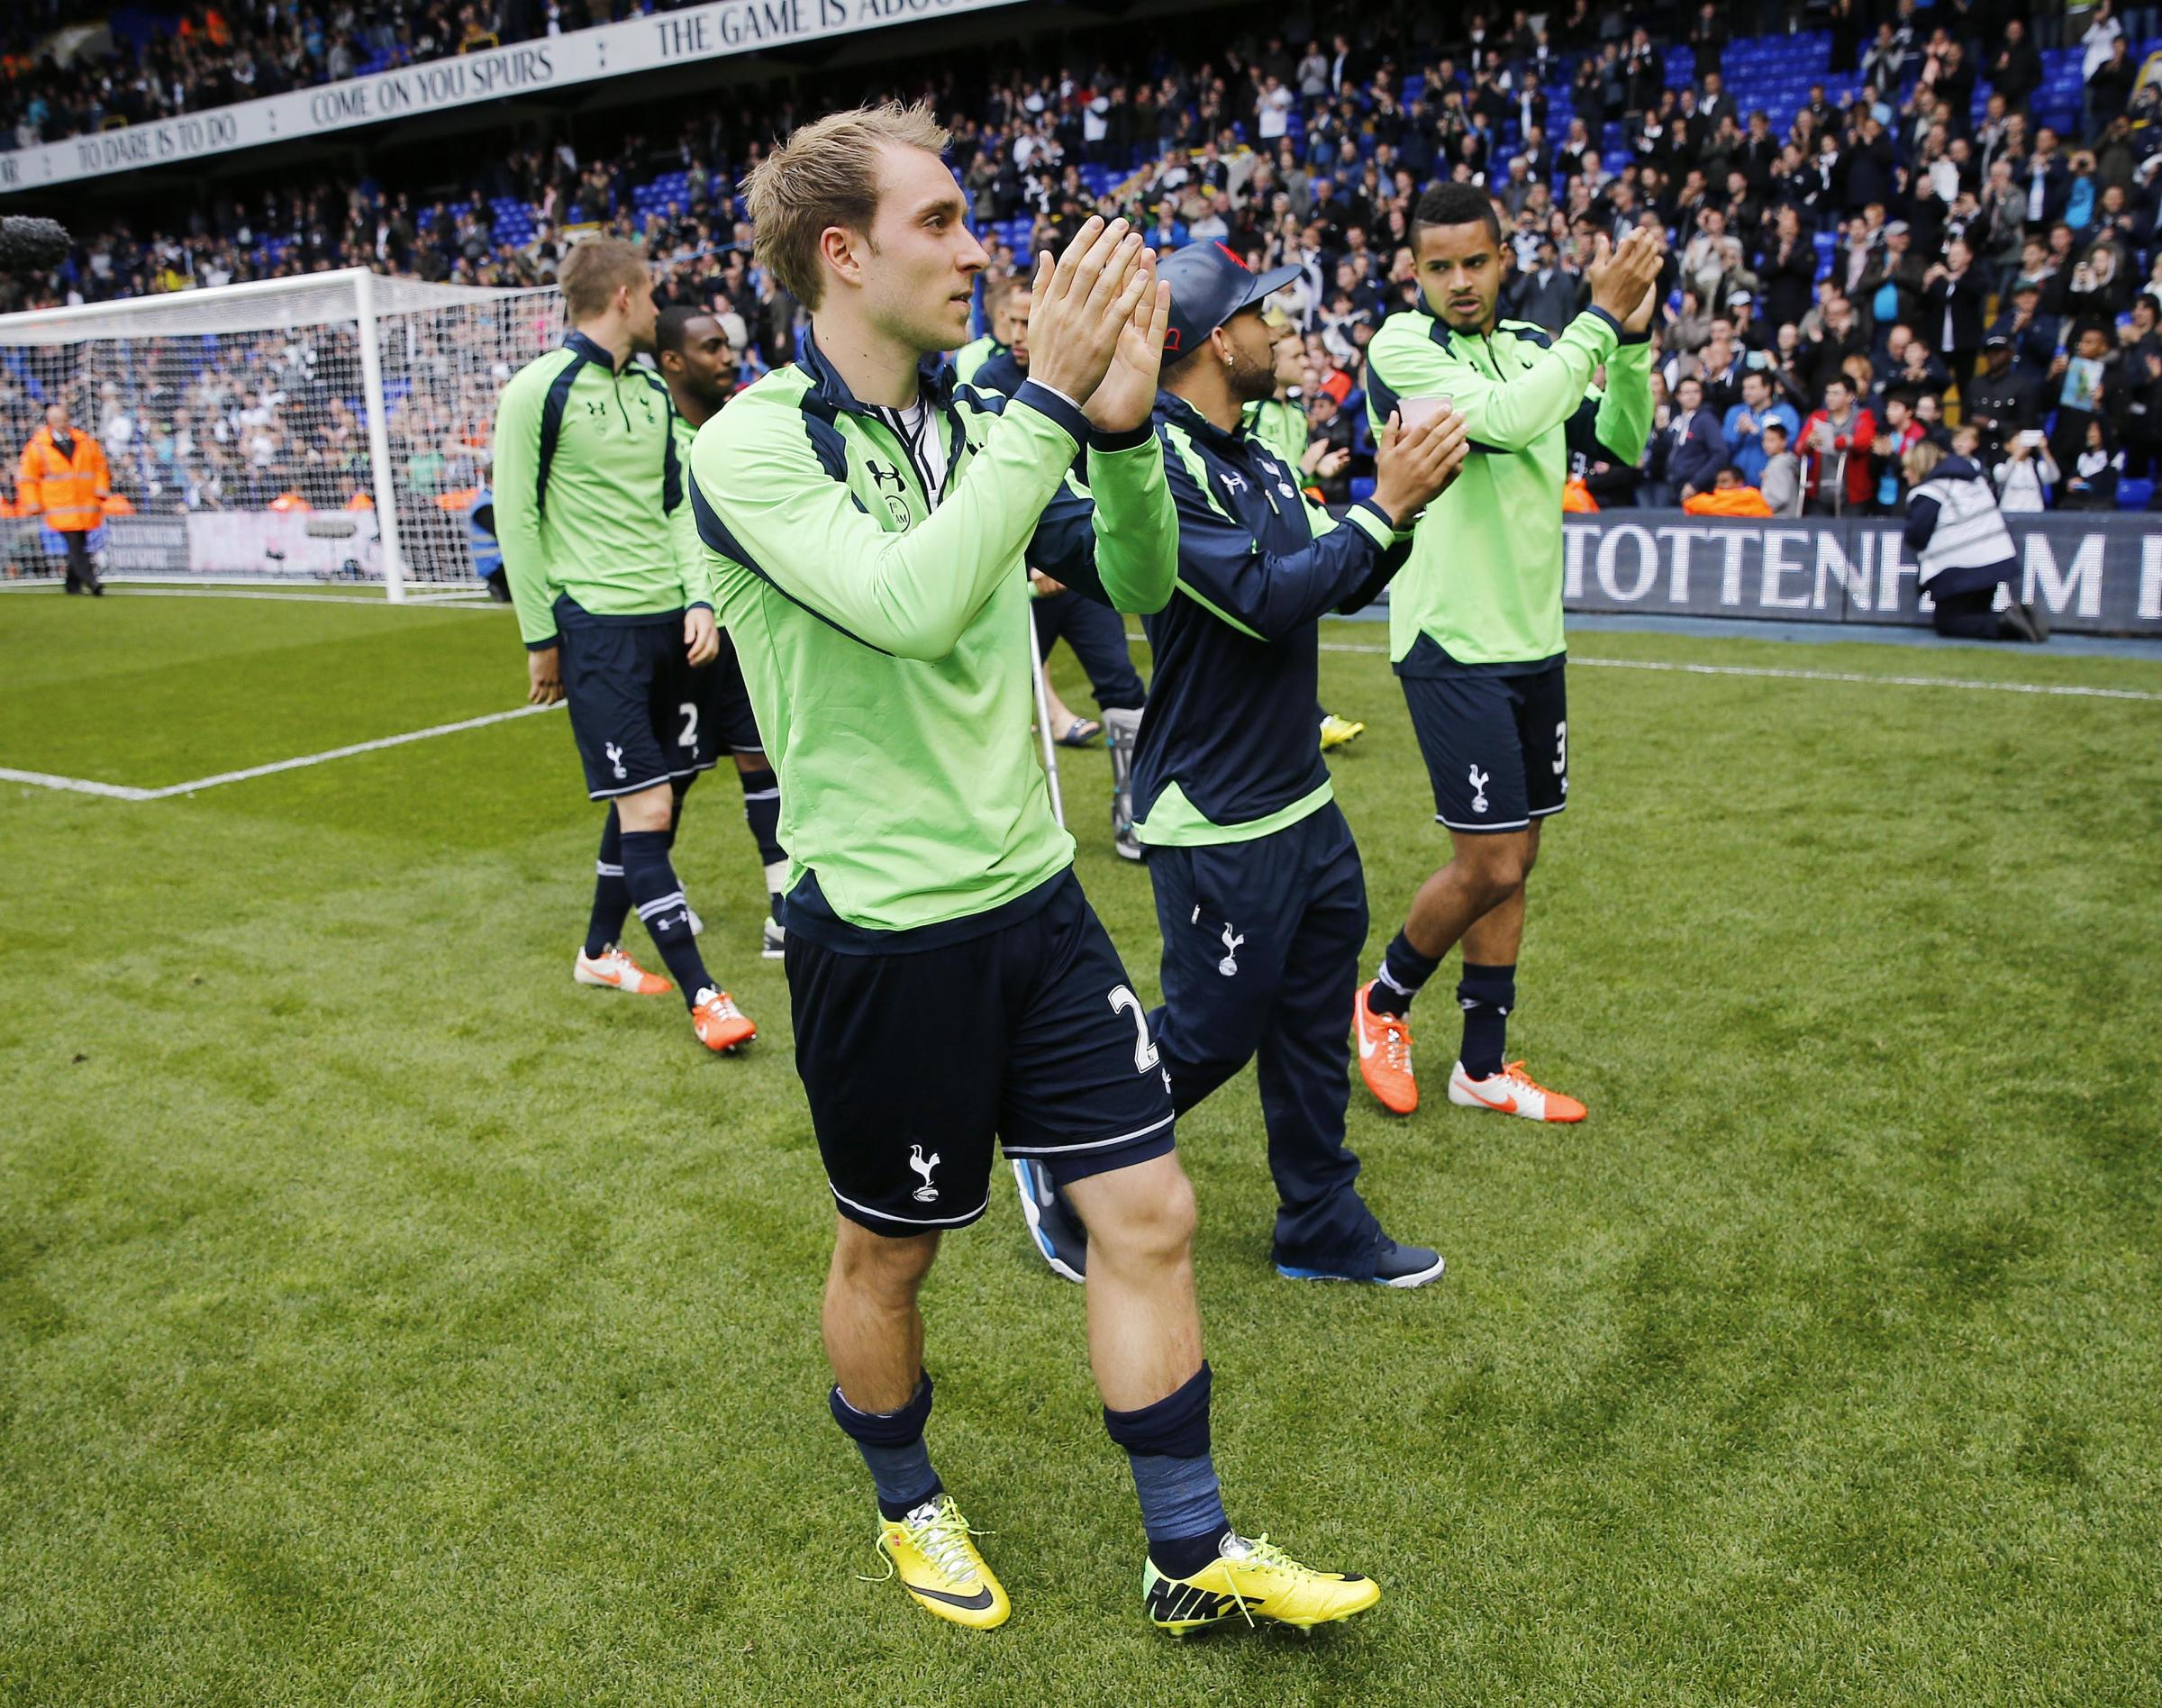 Christian Eriksen has arguably been the only summer signing to have impressed on a regular basis this season